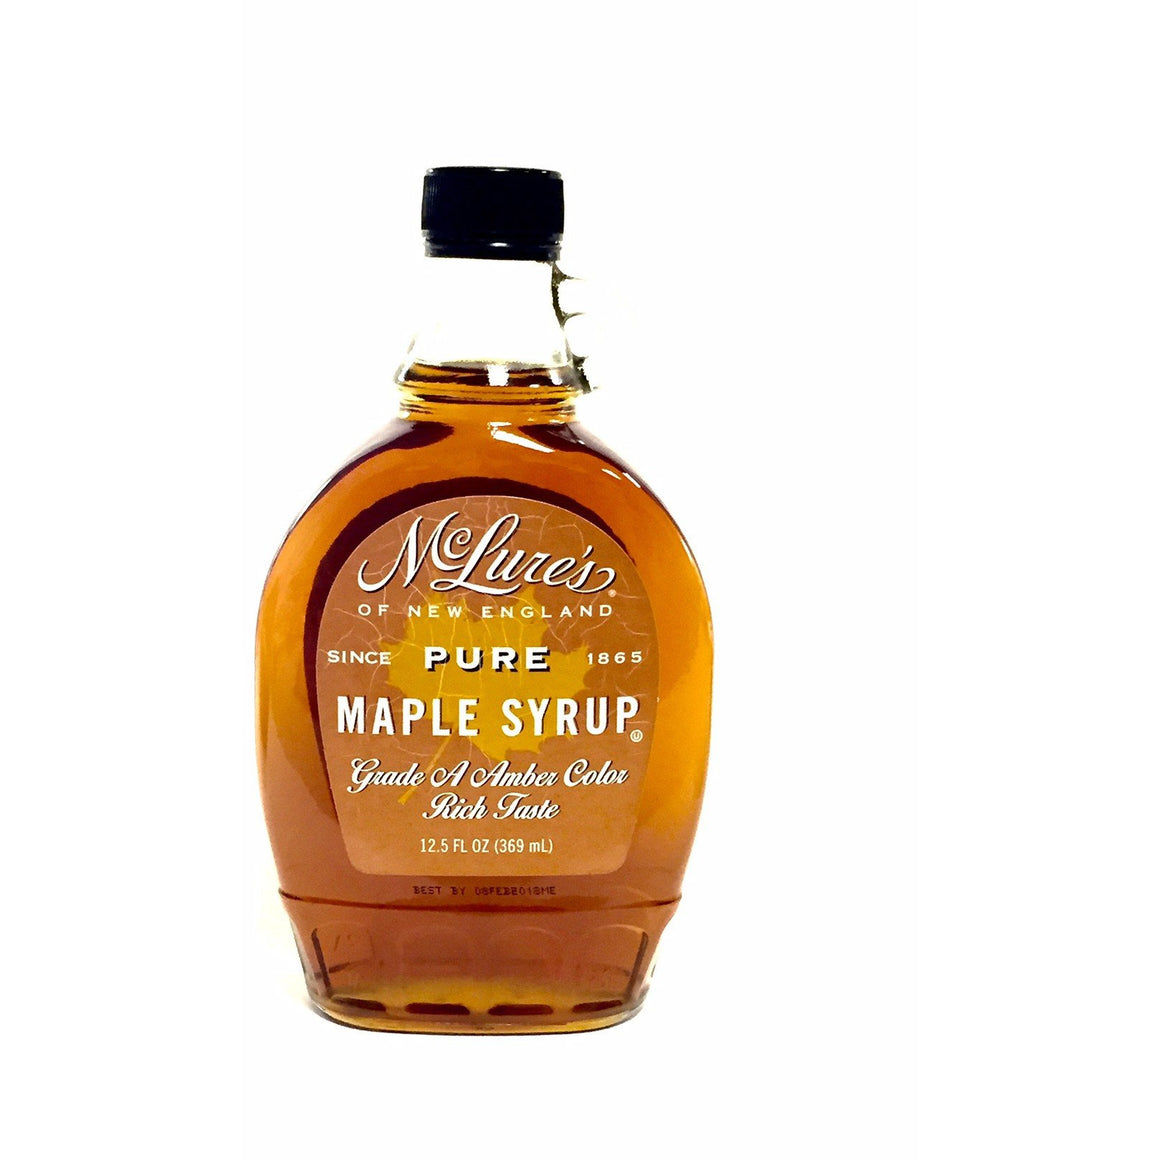 McLure's Pure Maple Syrup 12.50 fl oz.